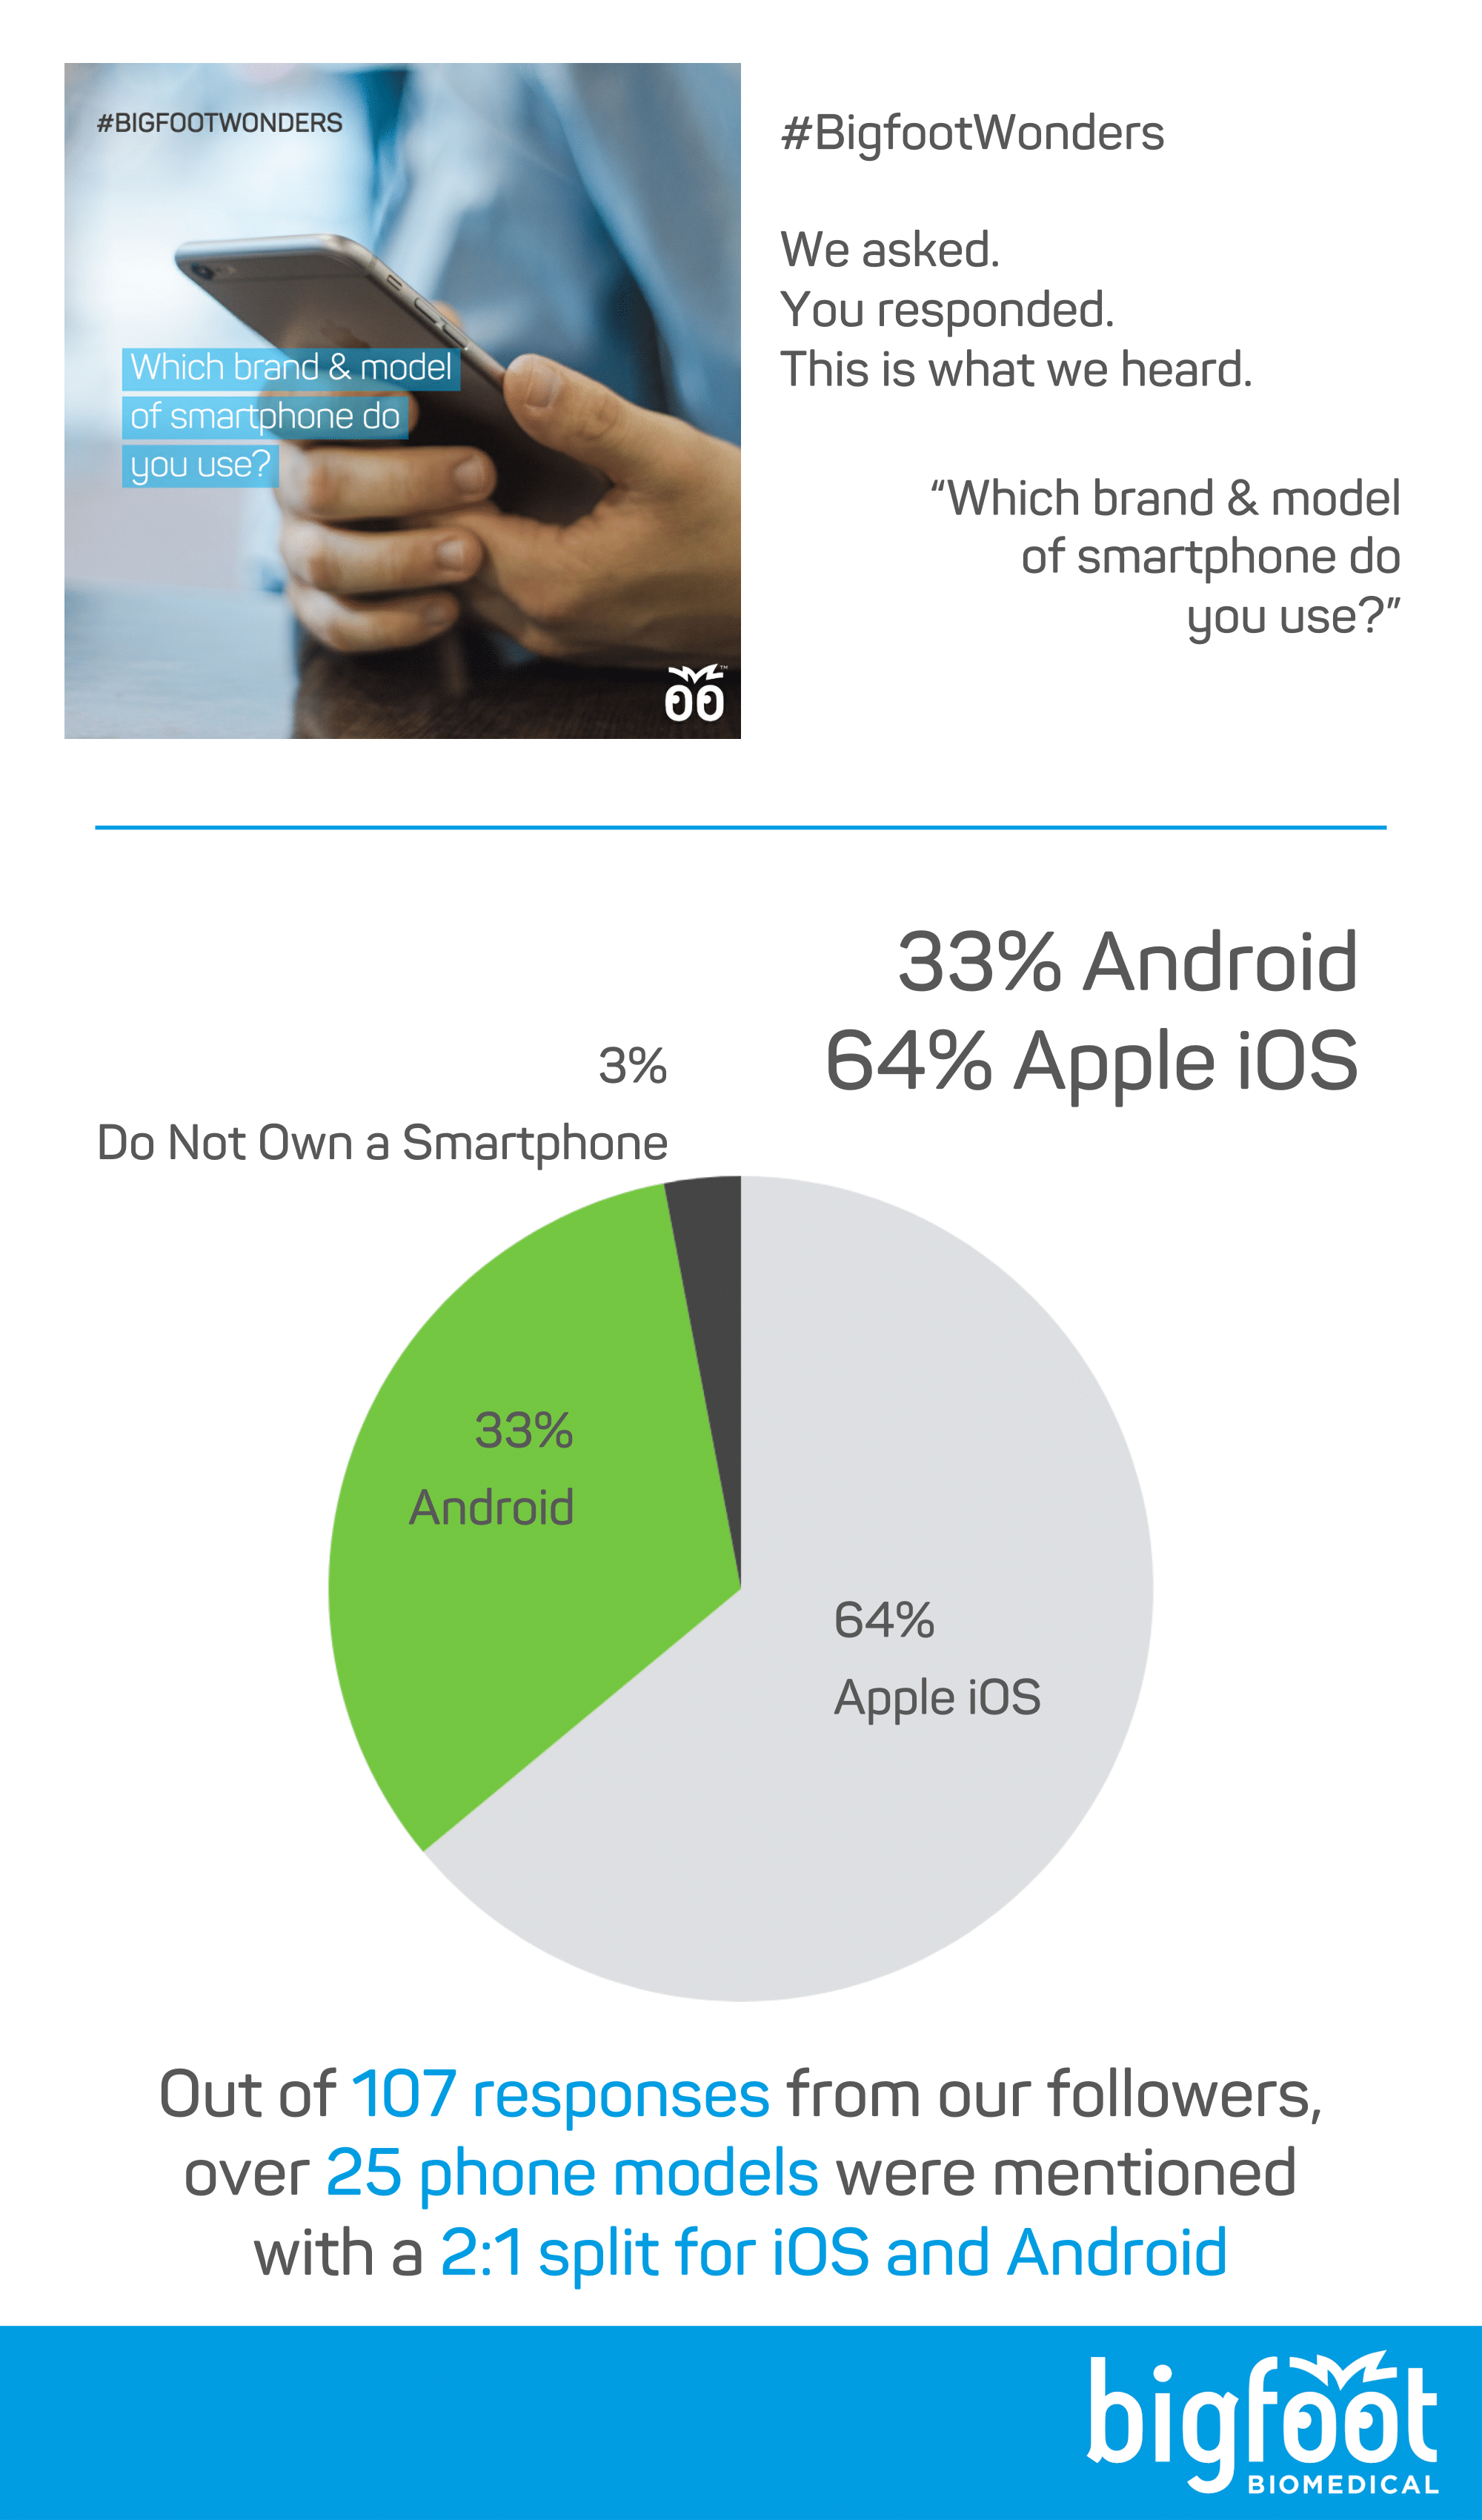 Of 107 responses, over 25 models of phone were mentioned, with a 2:1 split for iOS vs Android, 64% Apple, 33% Android, 3% flip phone or no smartphone at all